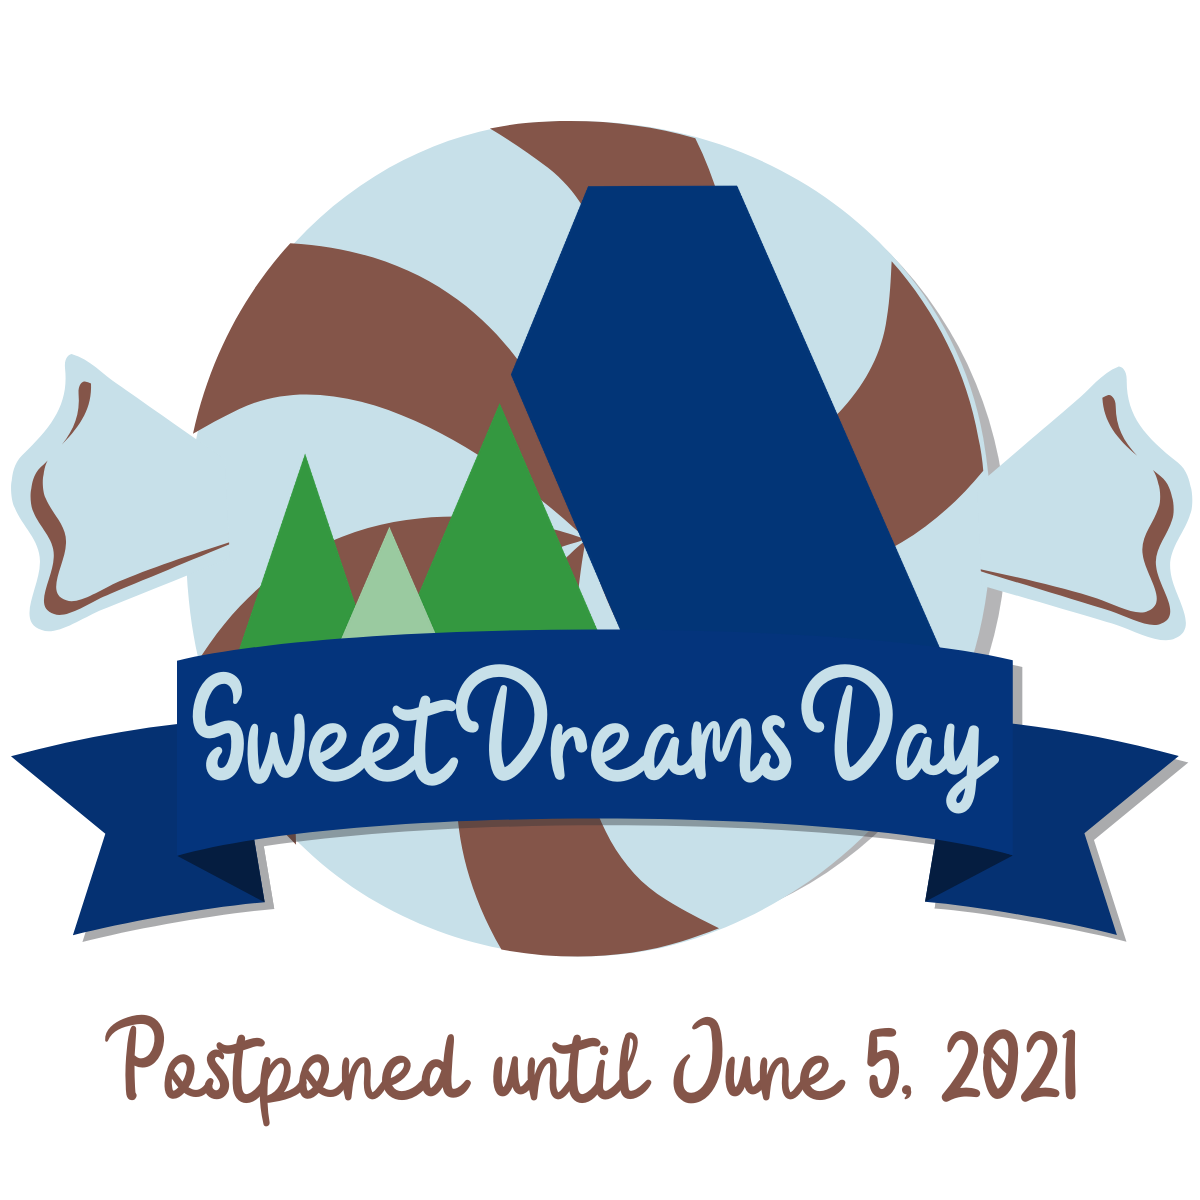 Sweet Dreams Day 2020 Logo Postponed